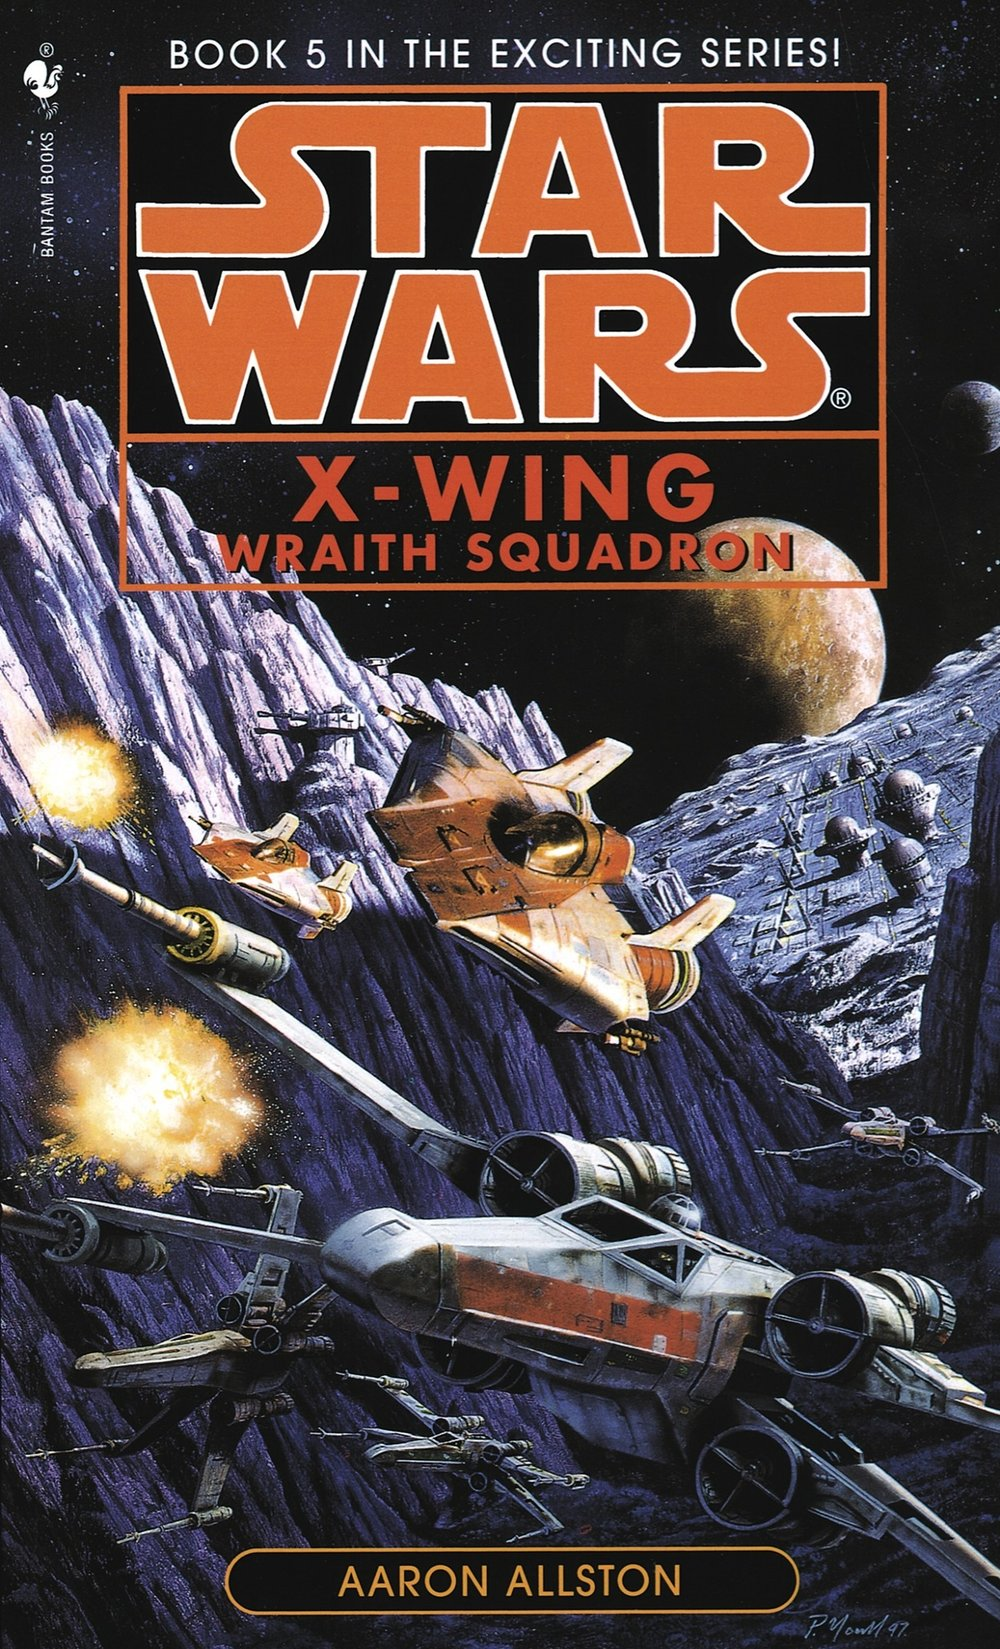 PART 15     Wraith Squadron  (1998)  by Aaron Allston